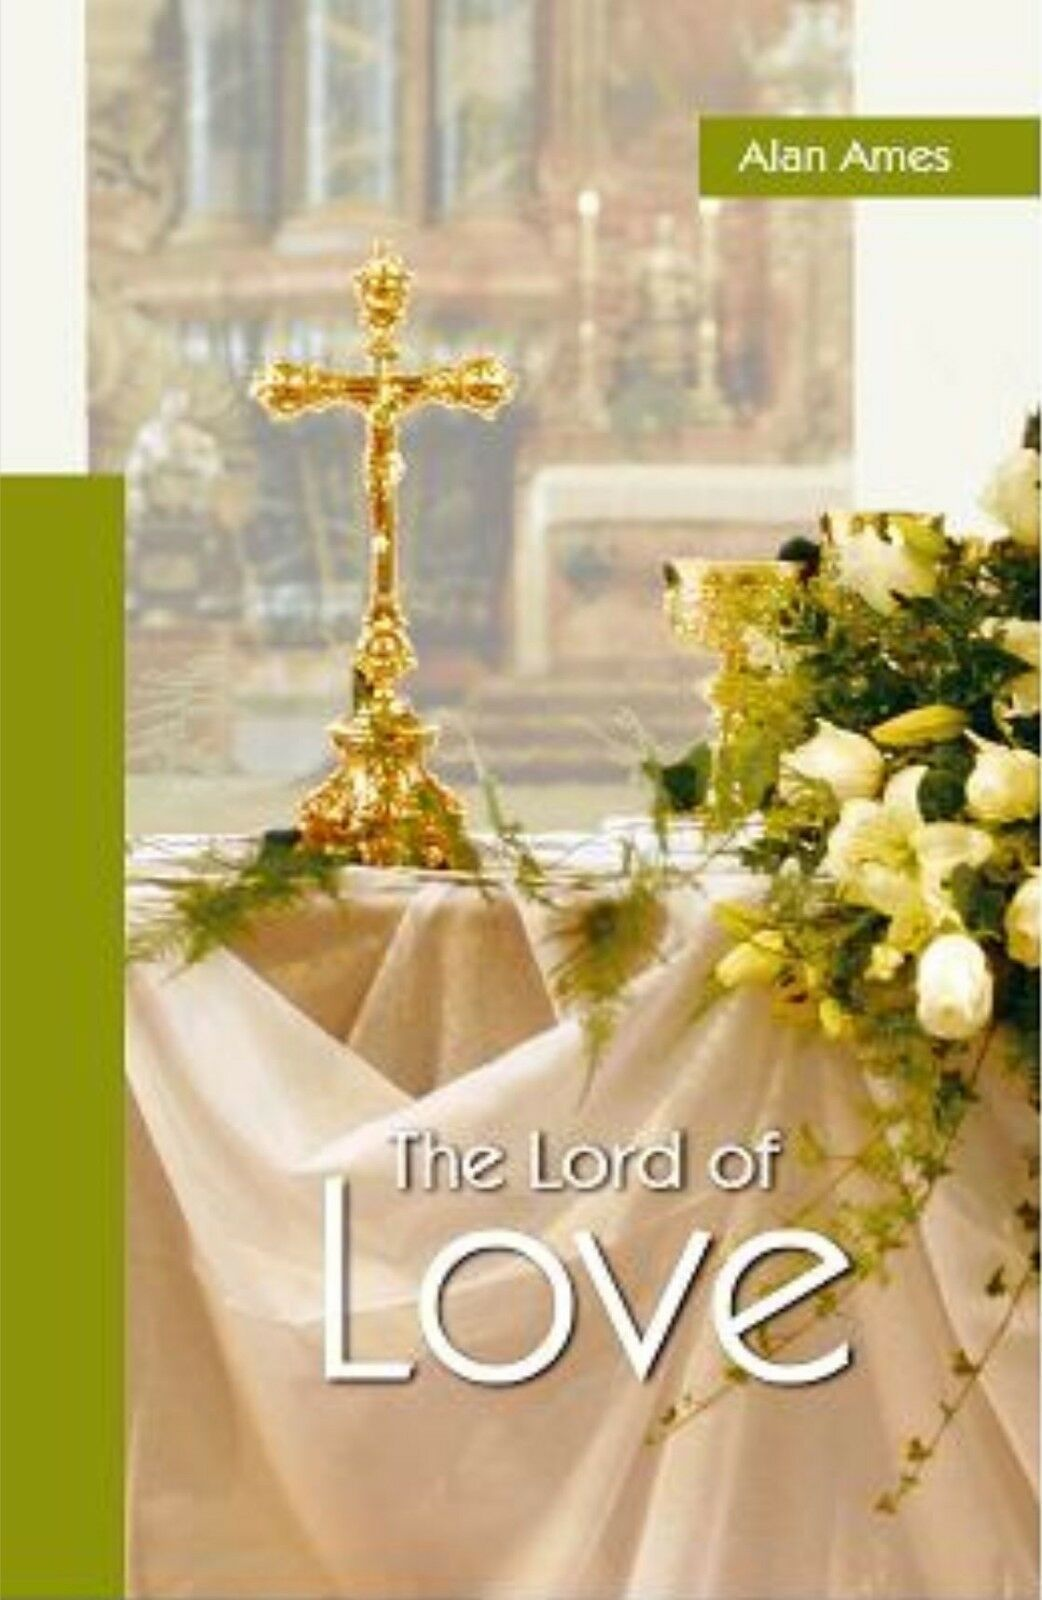 The Lord of Love- Paperback book By Carver Alan Ames